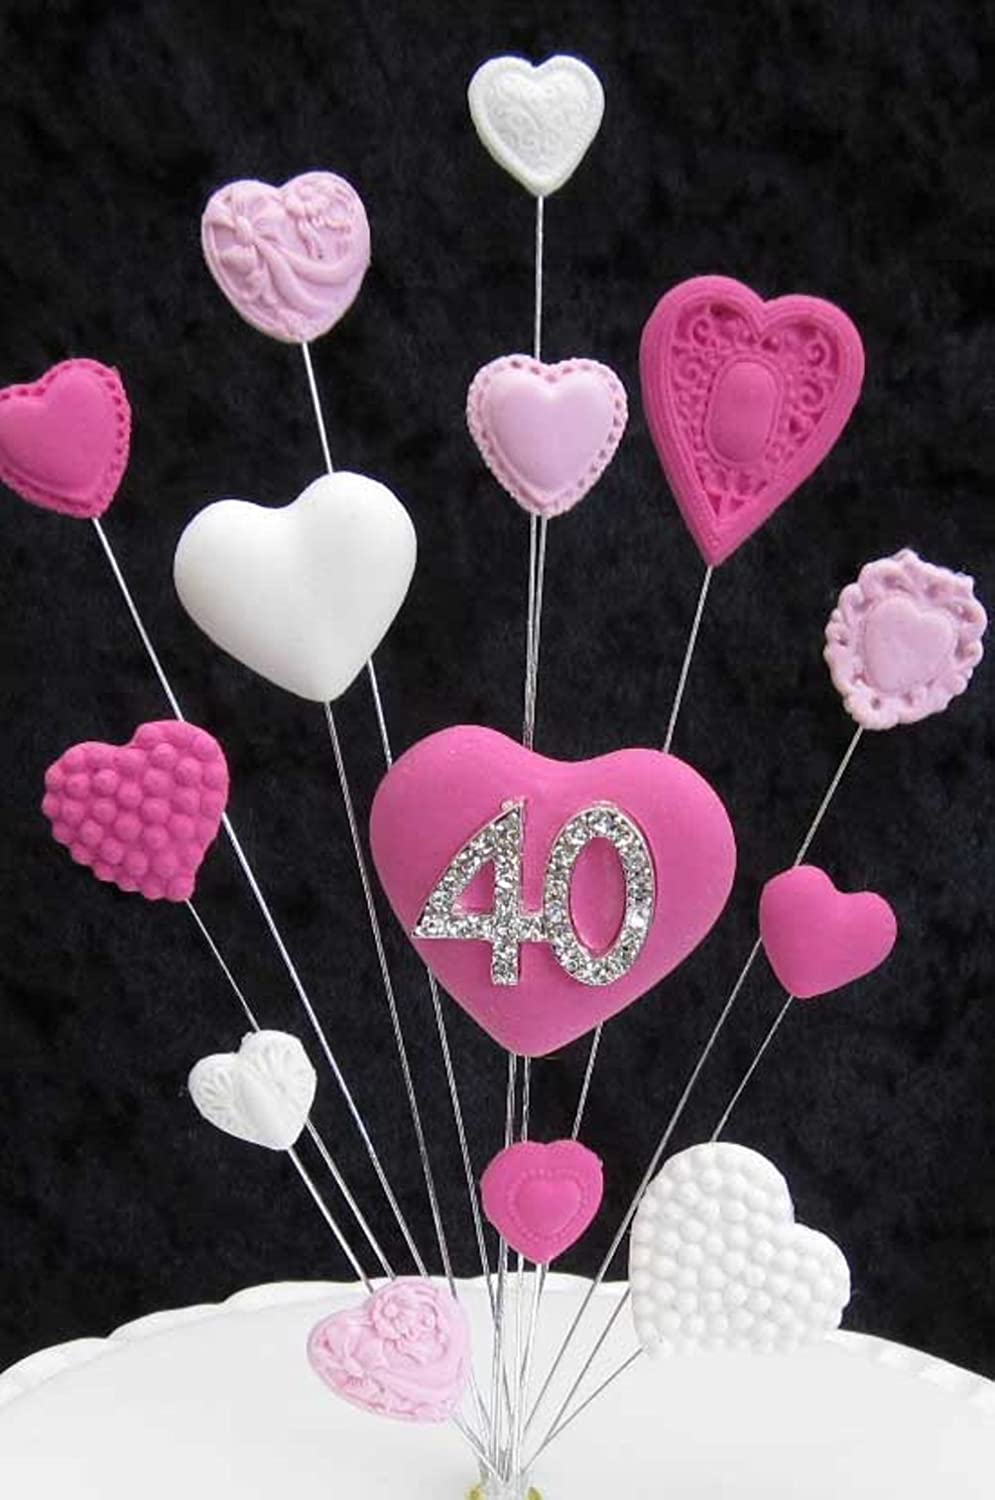 40th Birthday Cake Topper Pinks And White Hearts Suitable For A